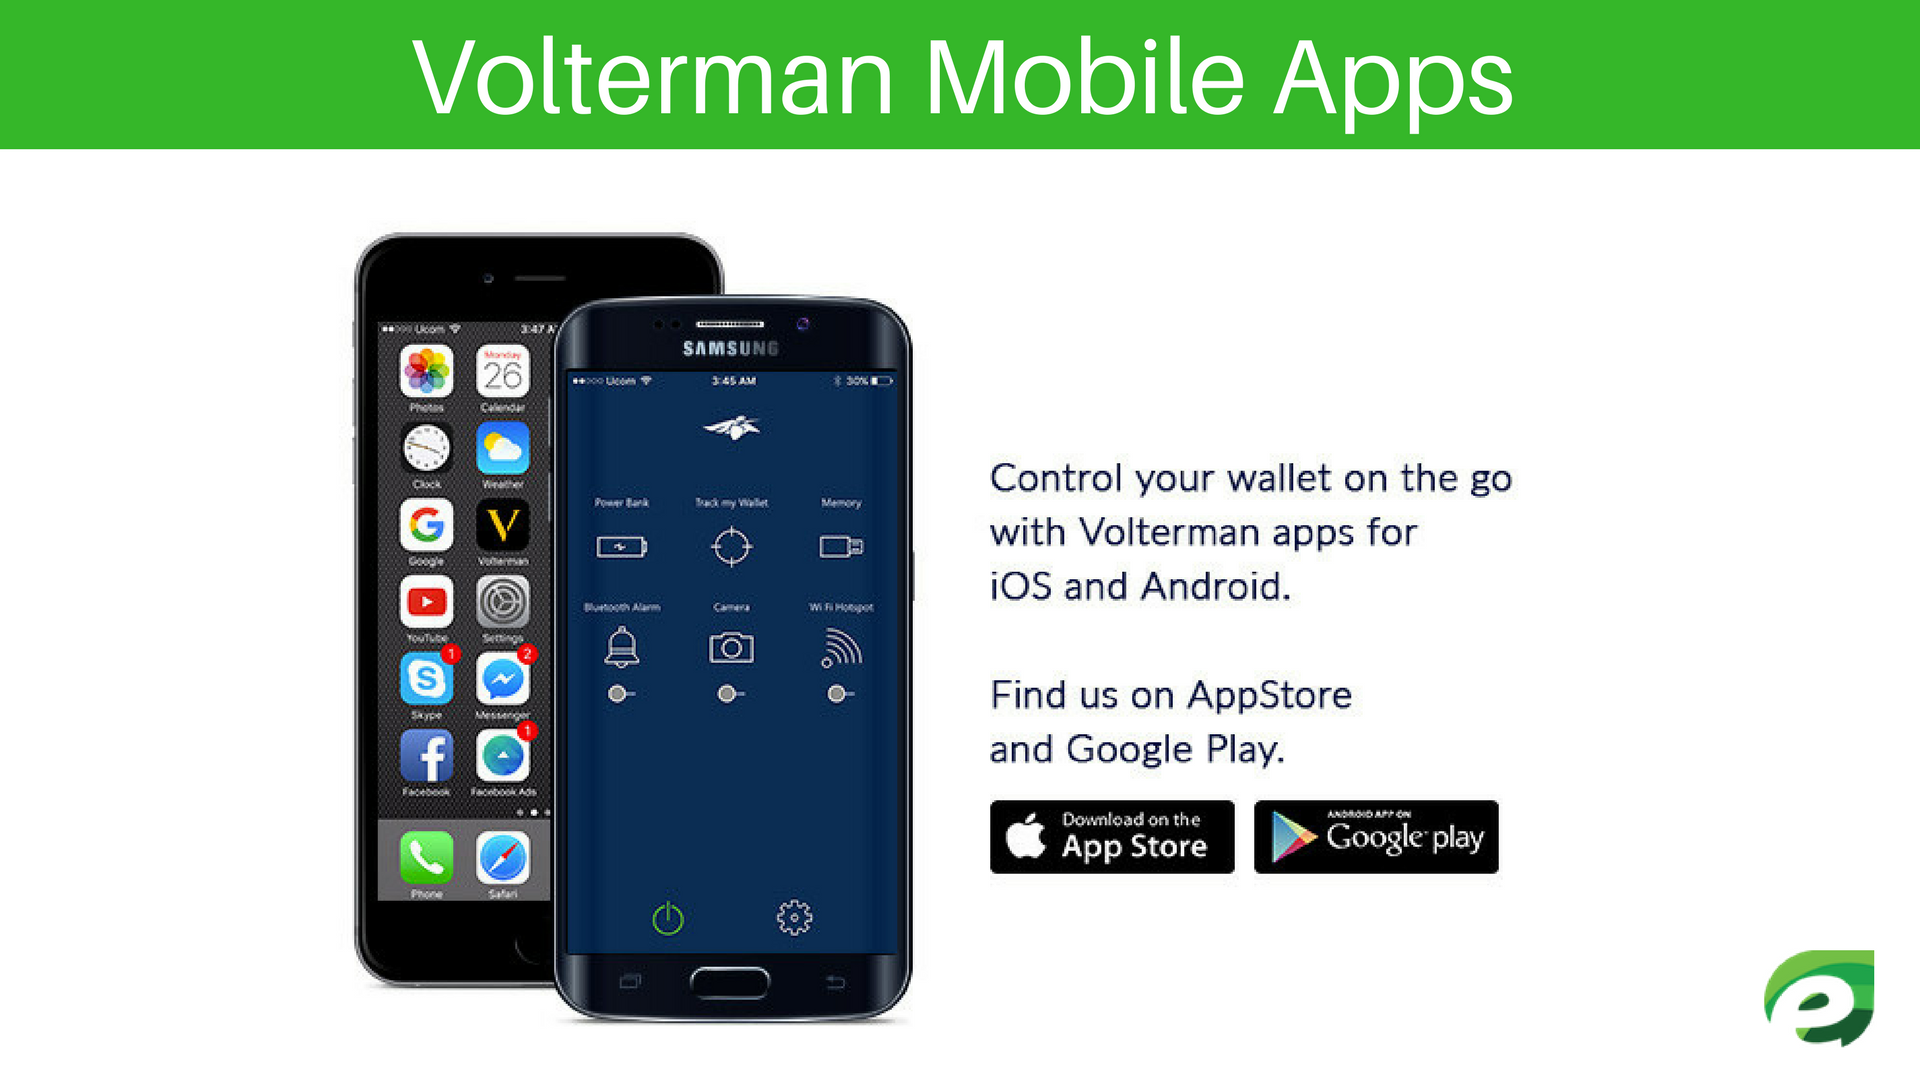 Mobile Apps - Volterman Wallet